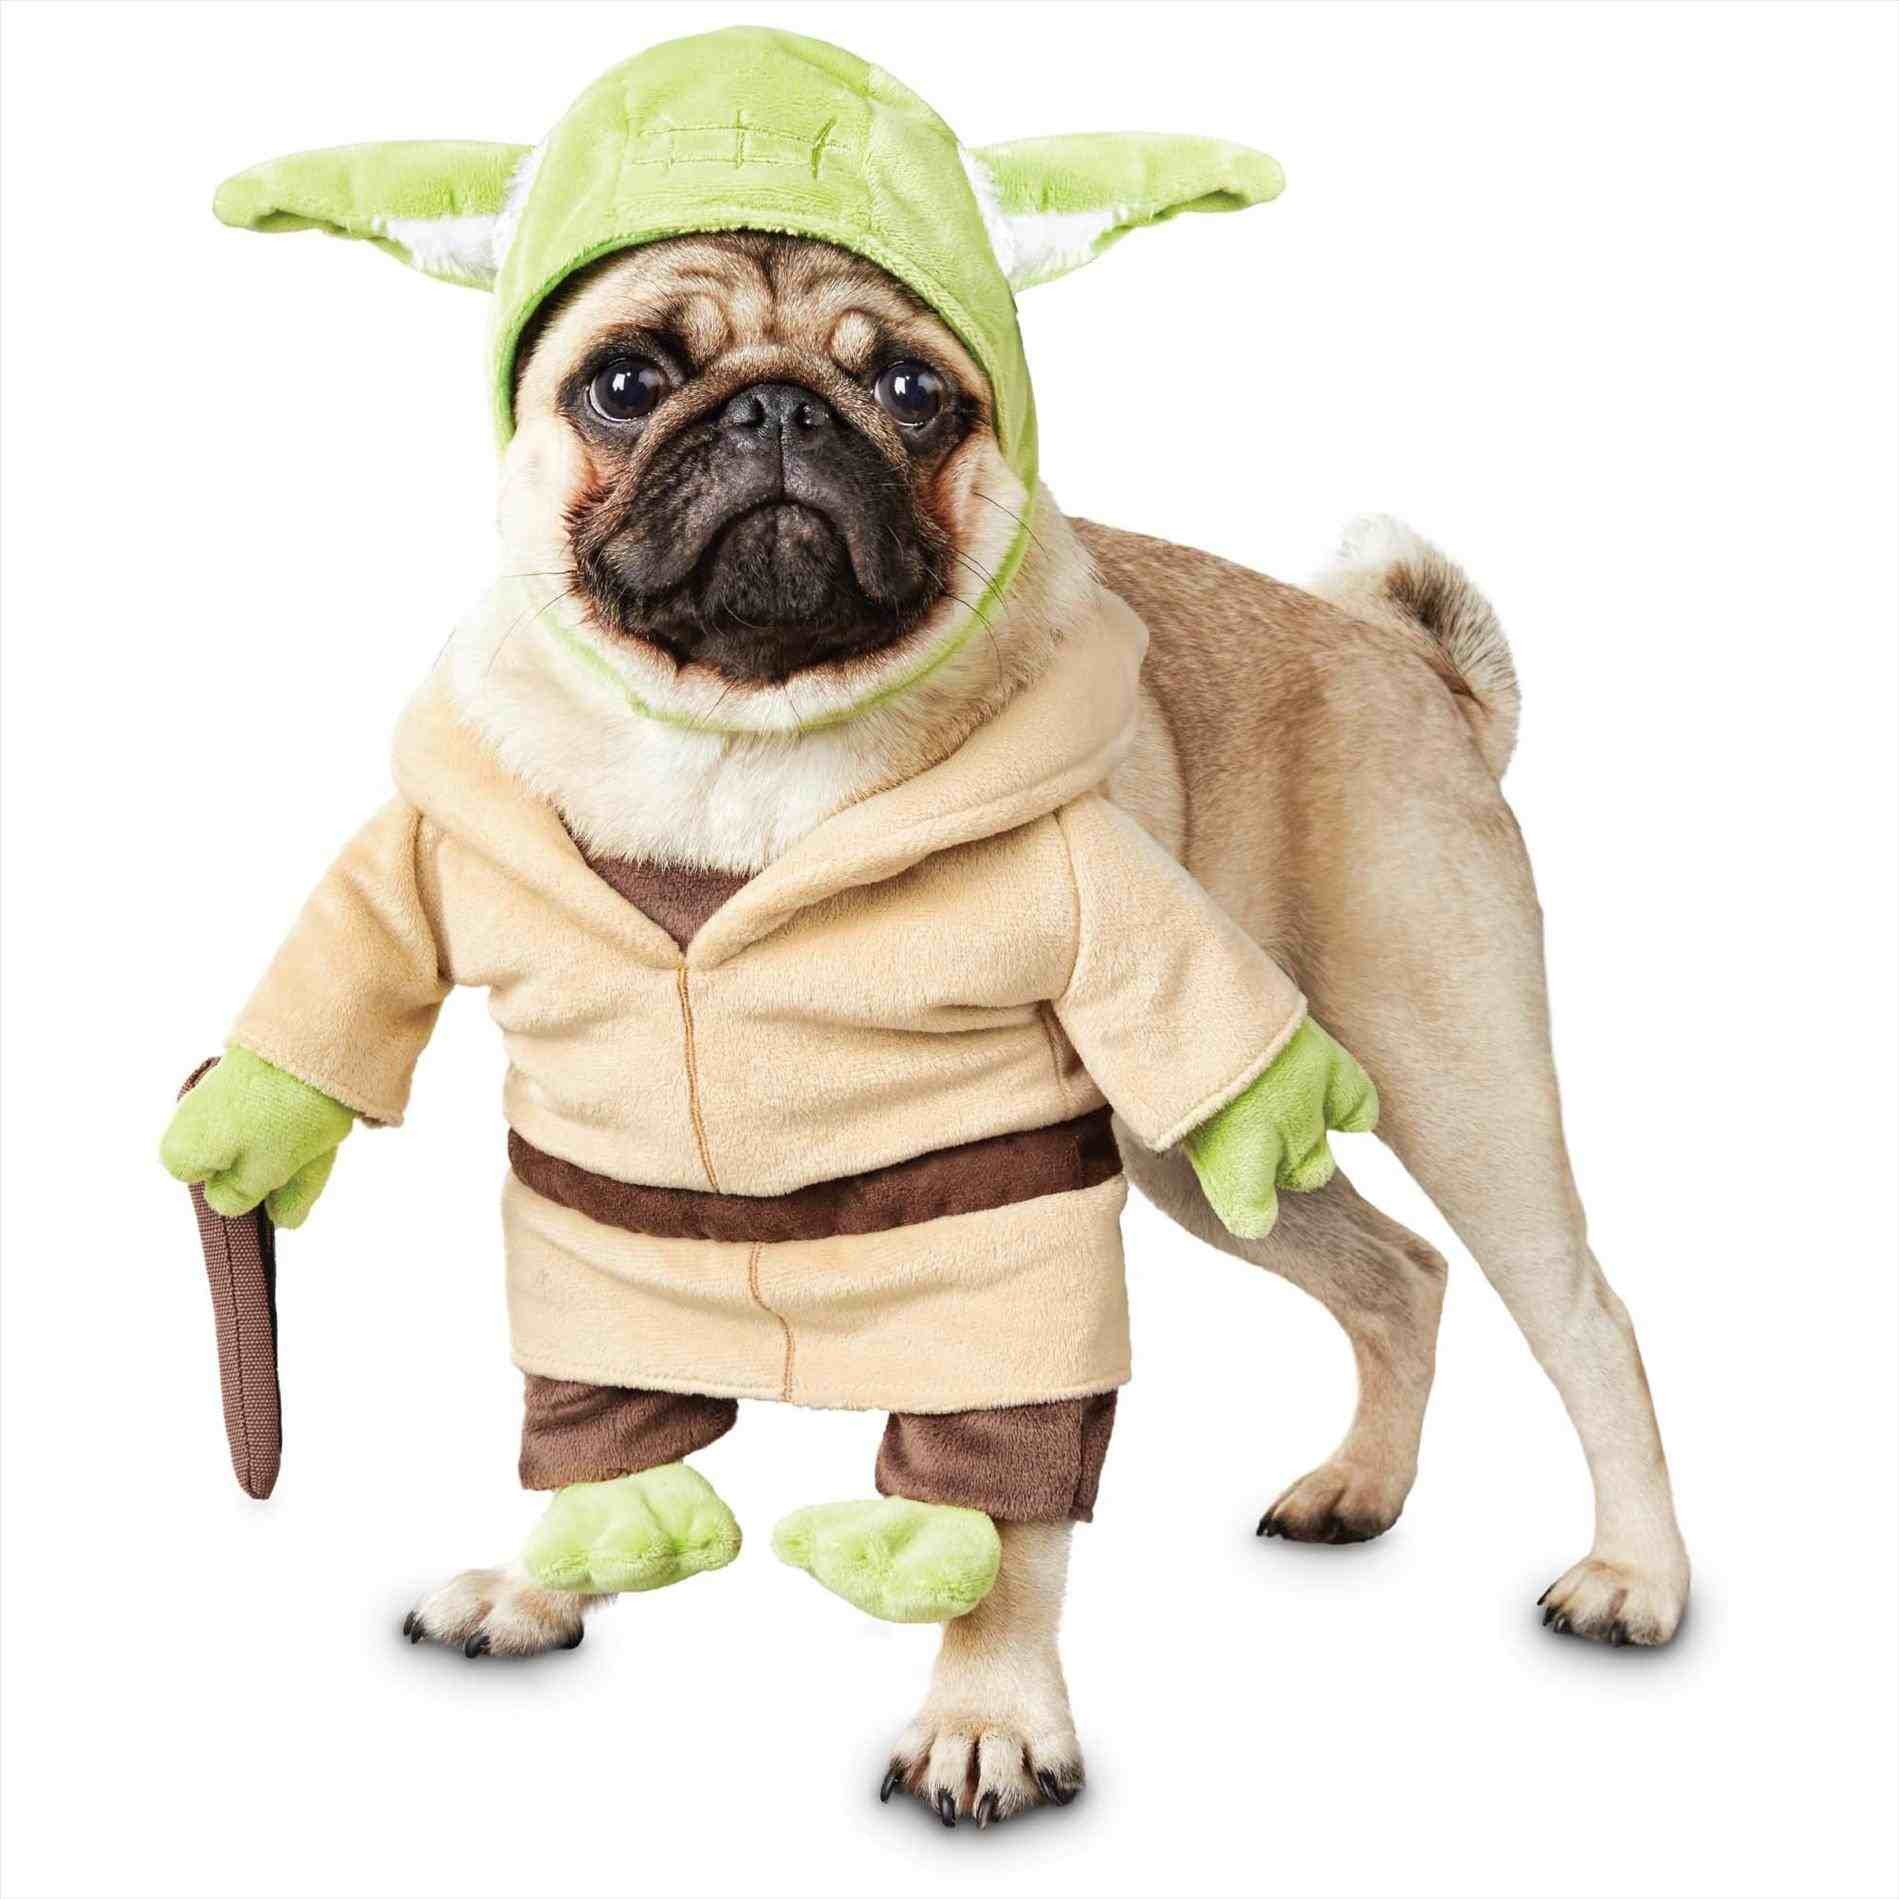 Petco Star Wars pet toys, beds, clothes, etc. 60% off! $2.8